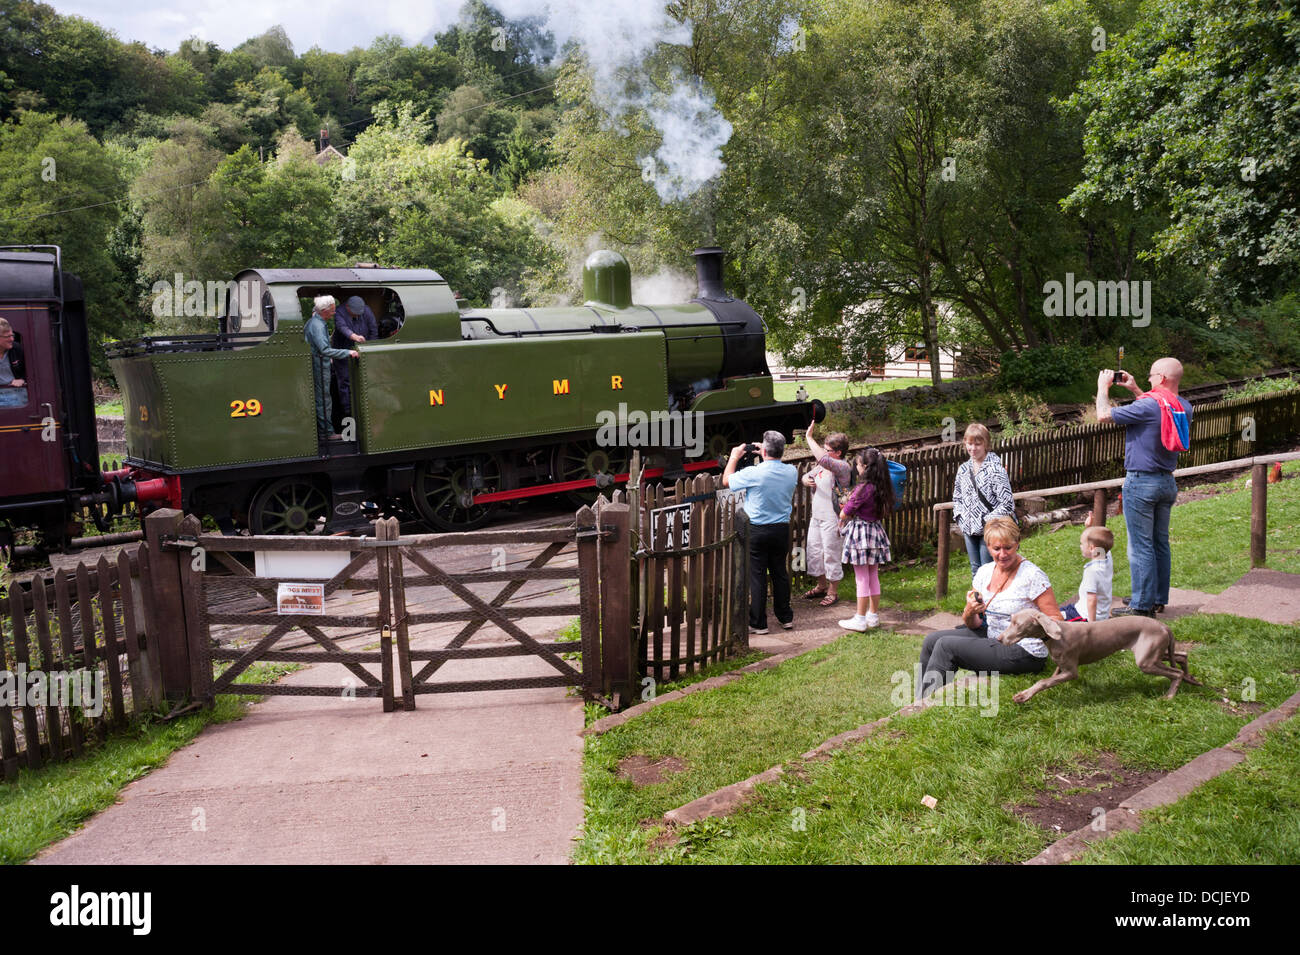 Visitors wave as a steam train passes the Black Lion PH at Consall Forge, on the Churnet Valley Railway, Leek, Staffordshire, - Stock Image